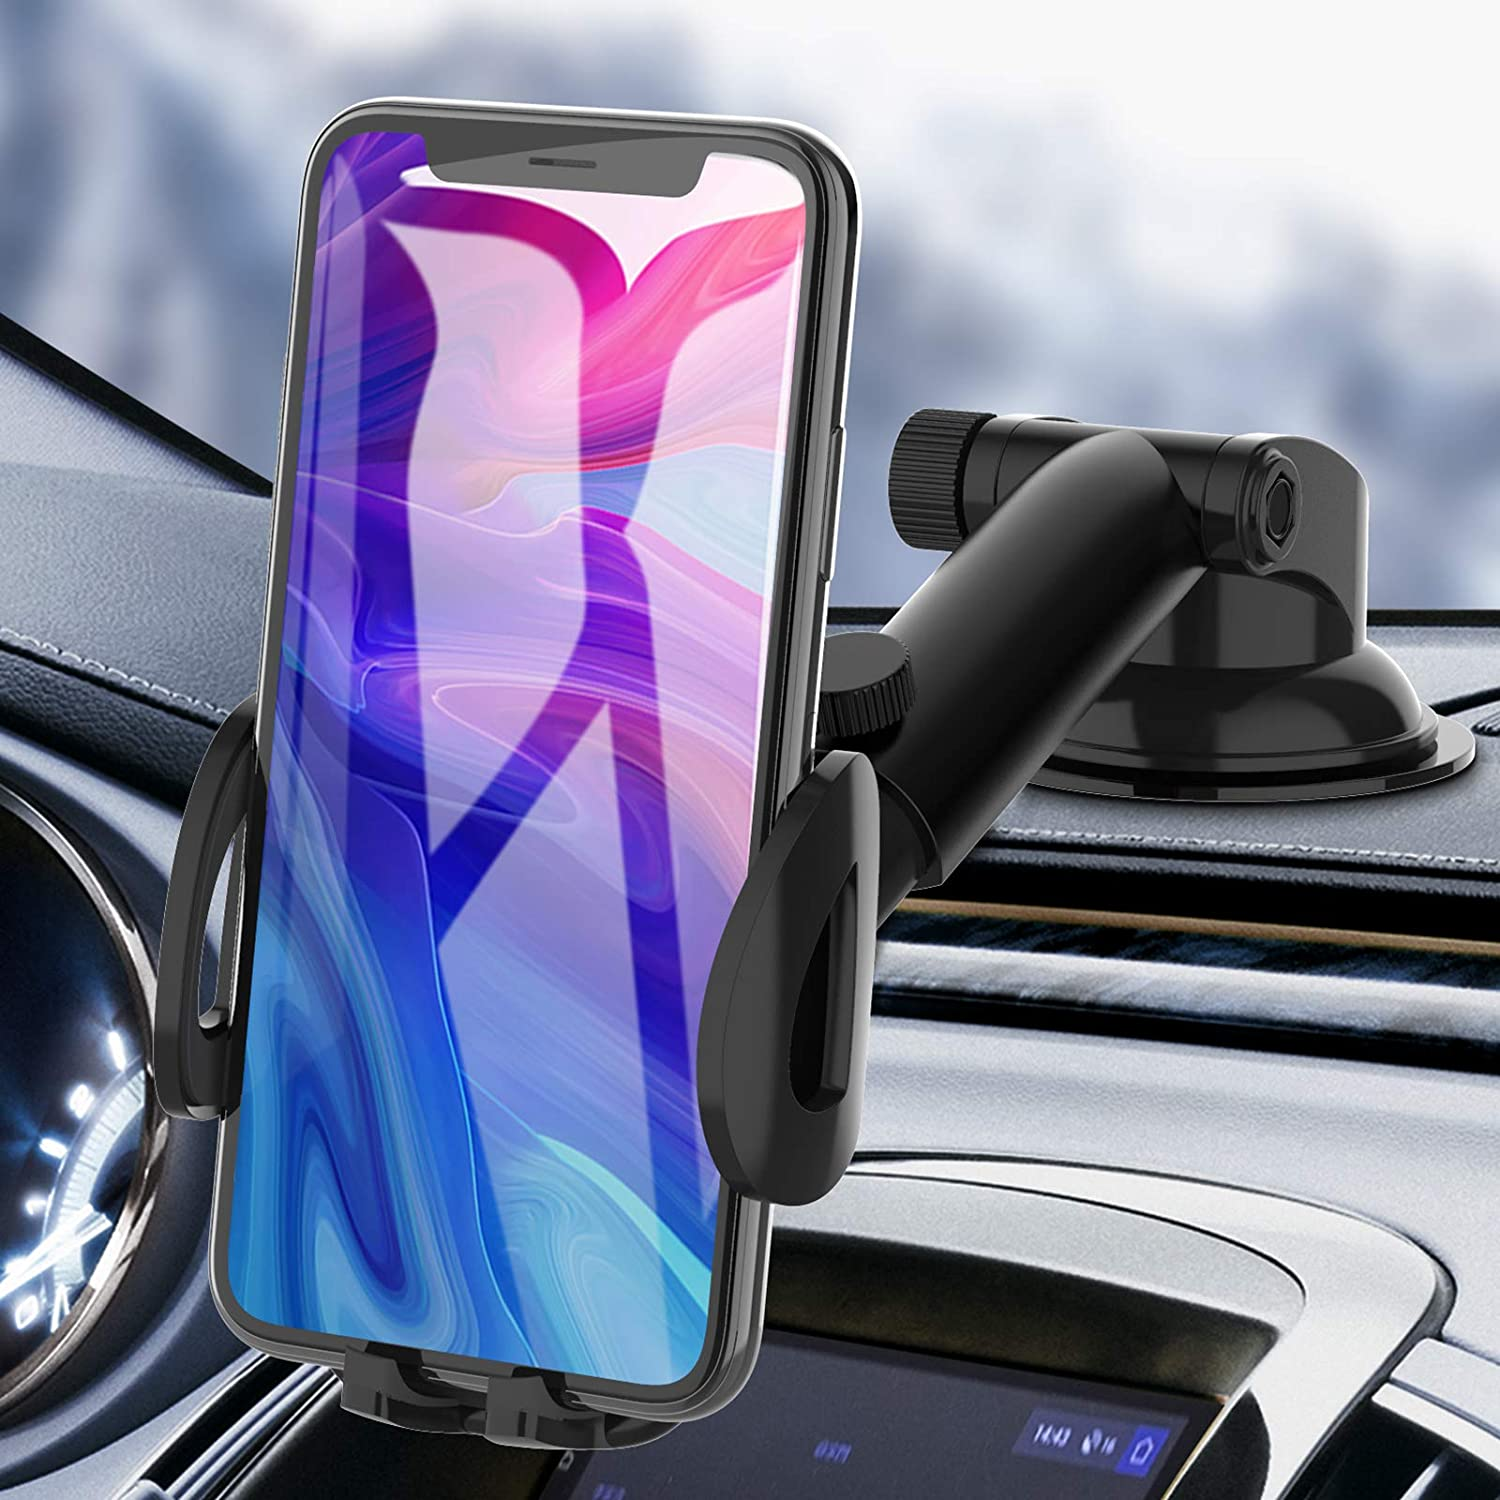 Car Phone Holder, bokilino Car Phone Mount - Cell Phone Holder for Car Dashboard Windshield, Sturdy Cup Holder Phone Mount Fit with All Mobile Phones